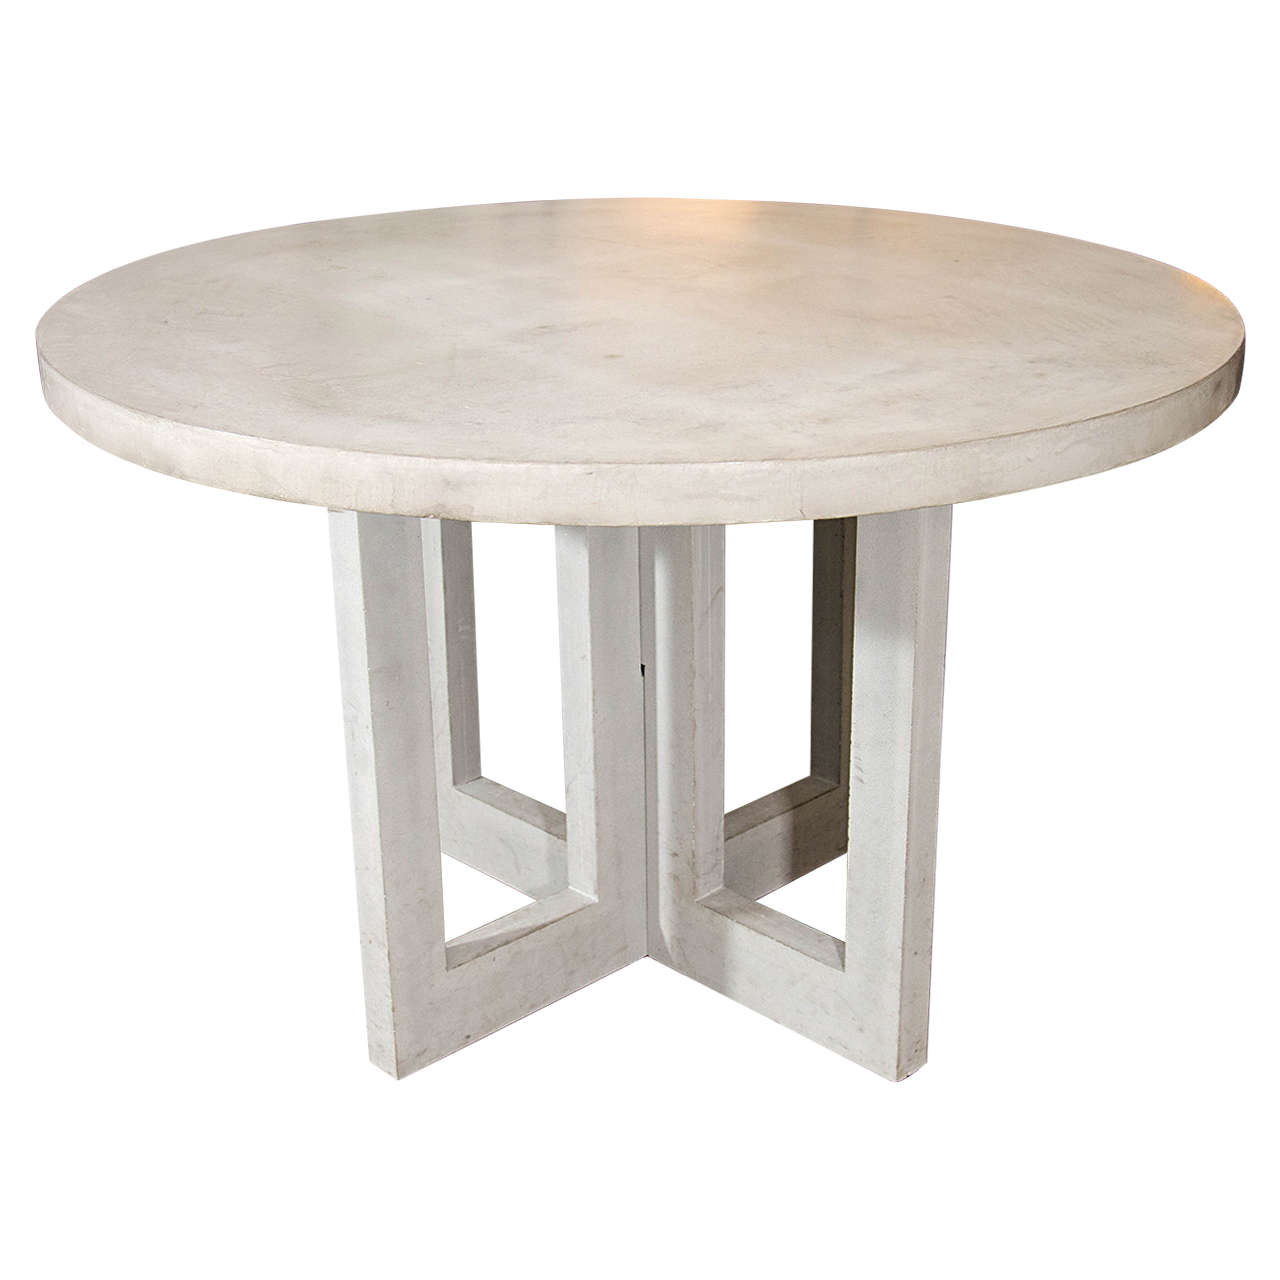 Dalton Concrete Dining Table At Stdibs - Concrete dining table for sale